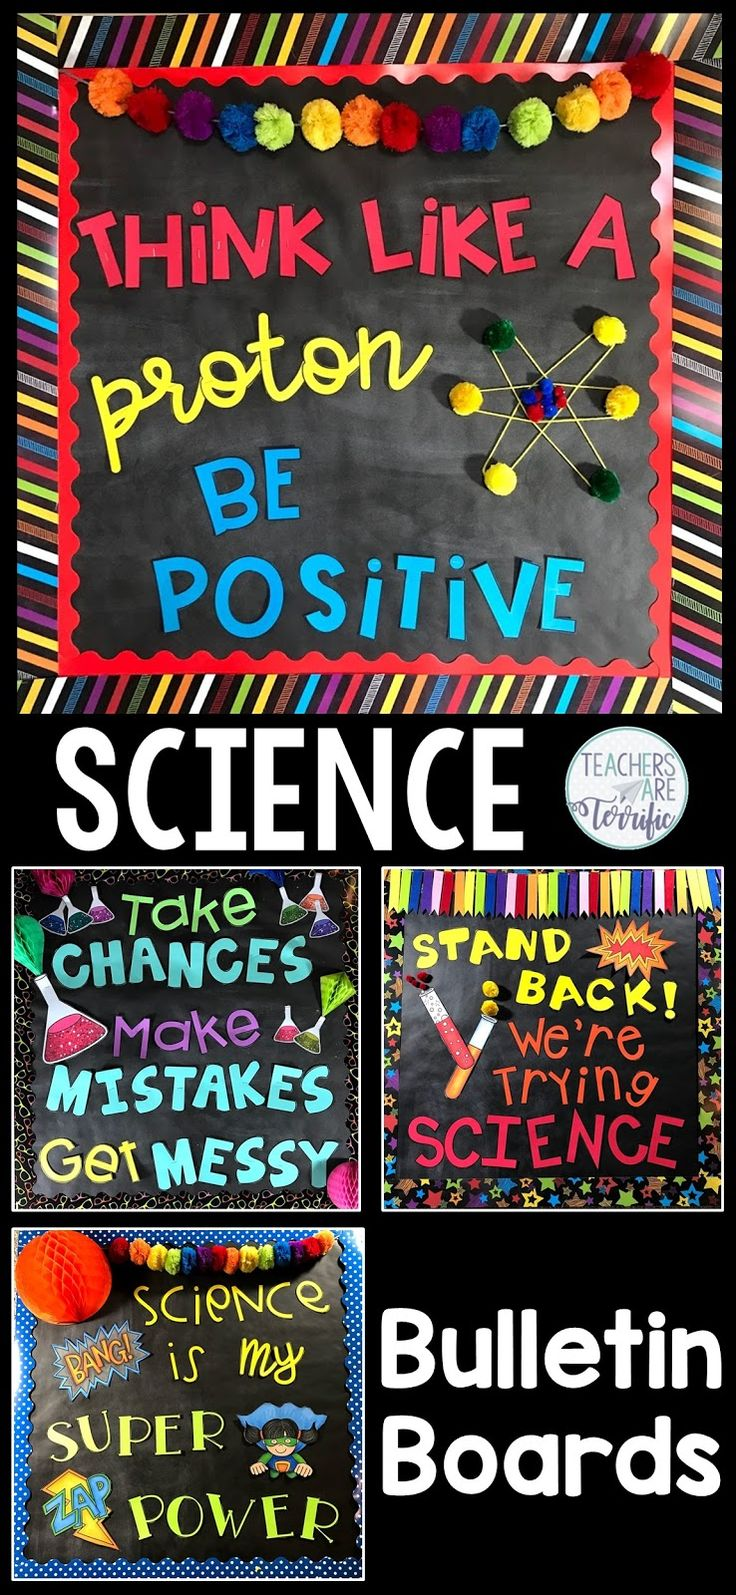 Cool Science Classroom Decorations ~ Best science bulletin boards ideas on pinterest